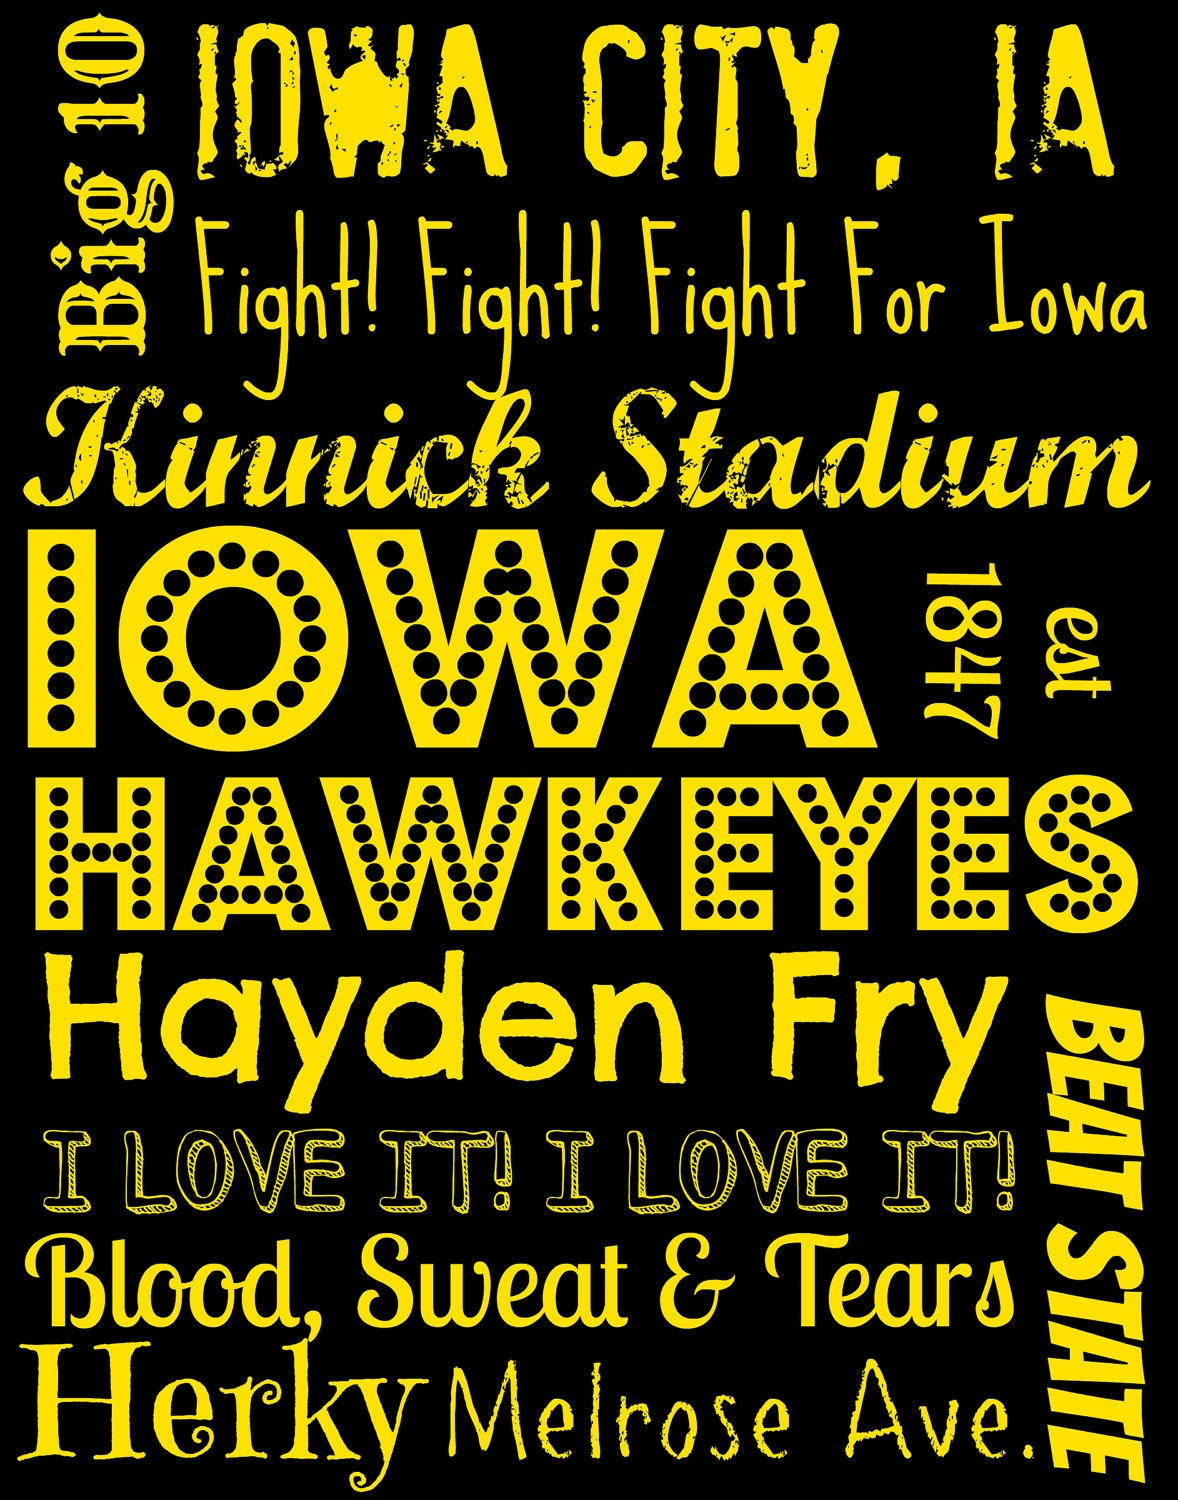 Iowa Hawkeye Images